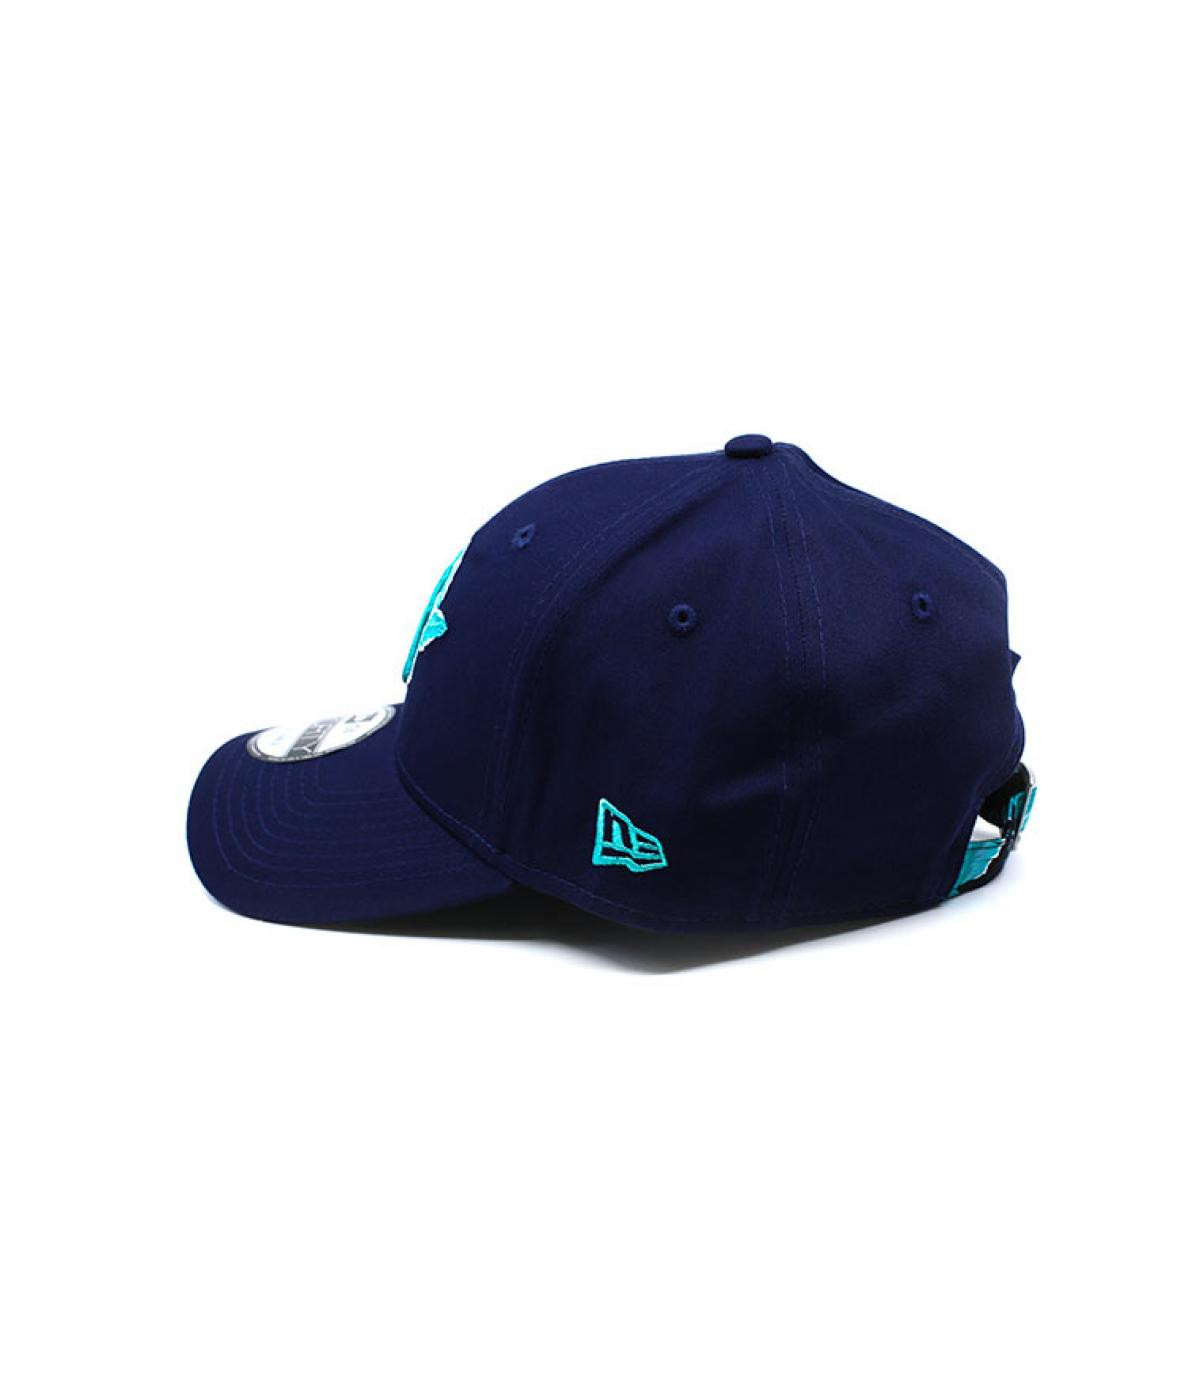 Details MLB Light Weight NY 9Forty nay teal - afbeeling 4